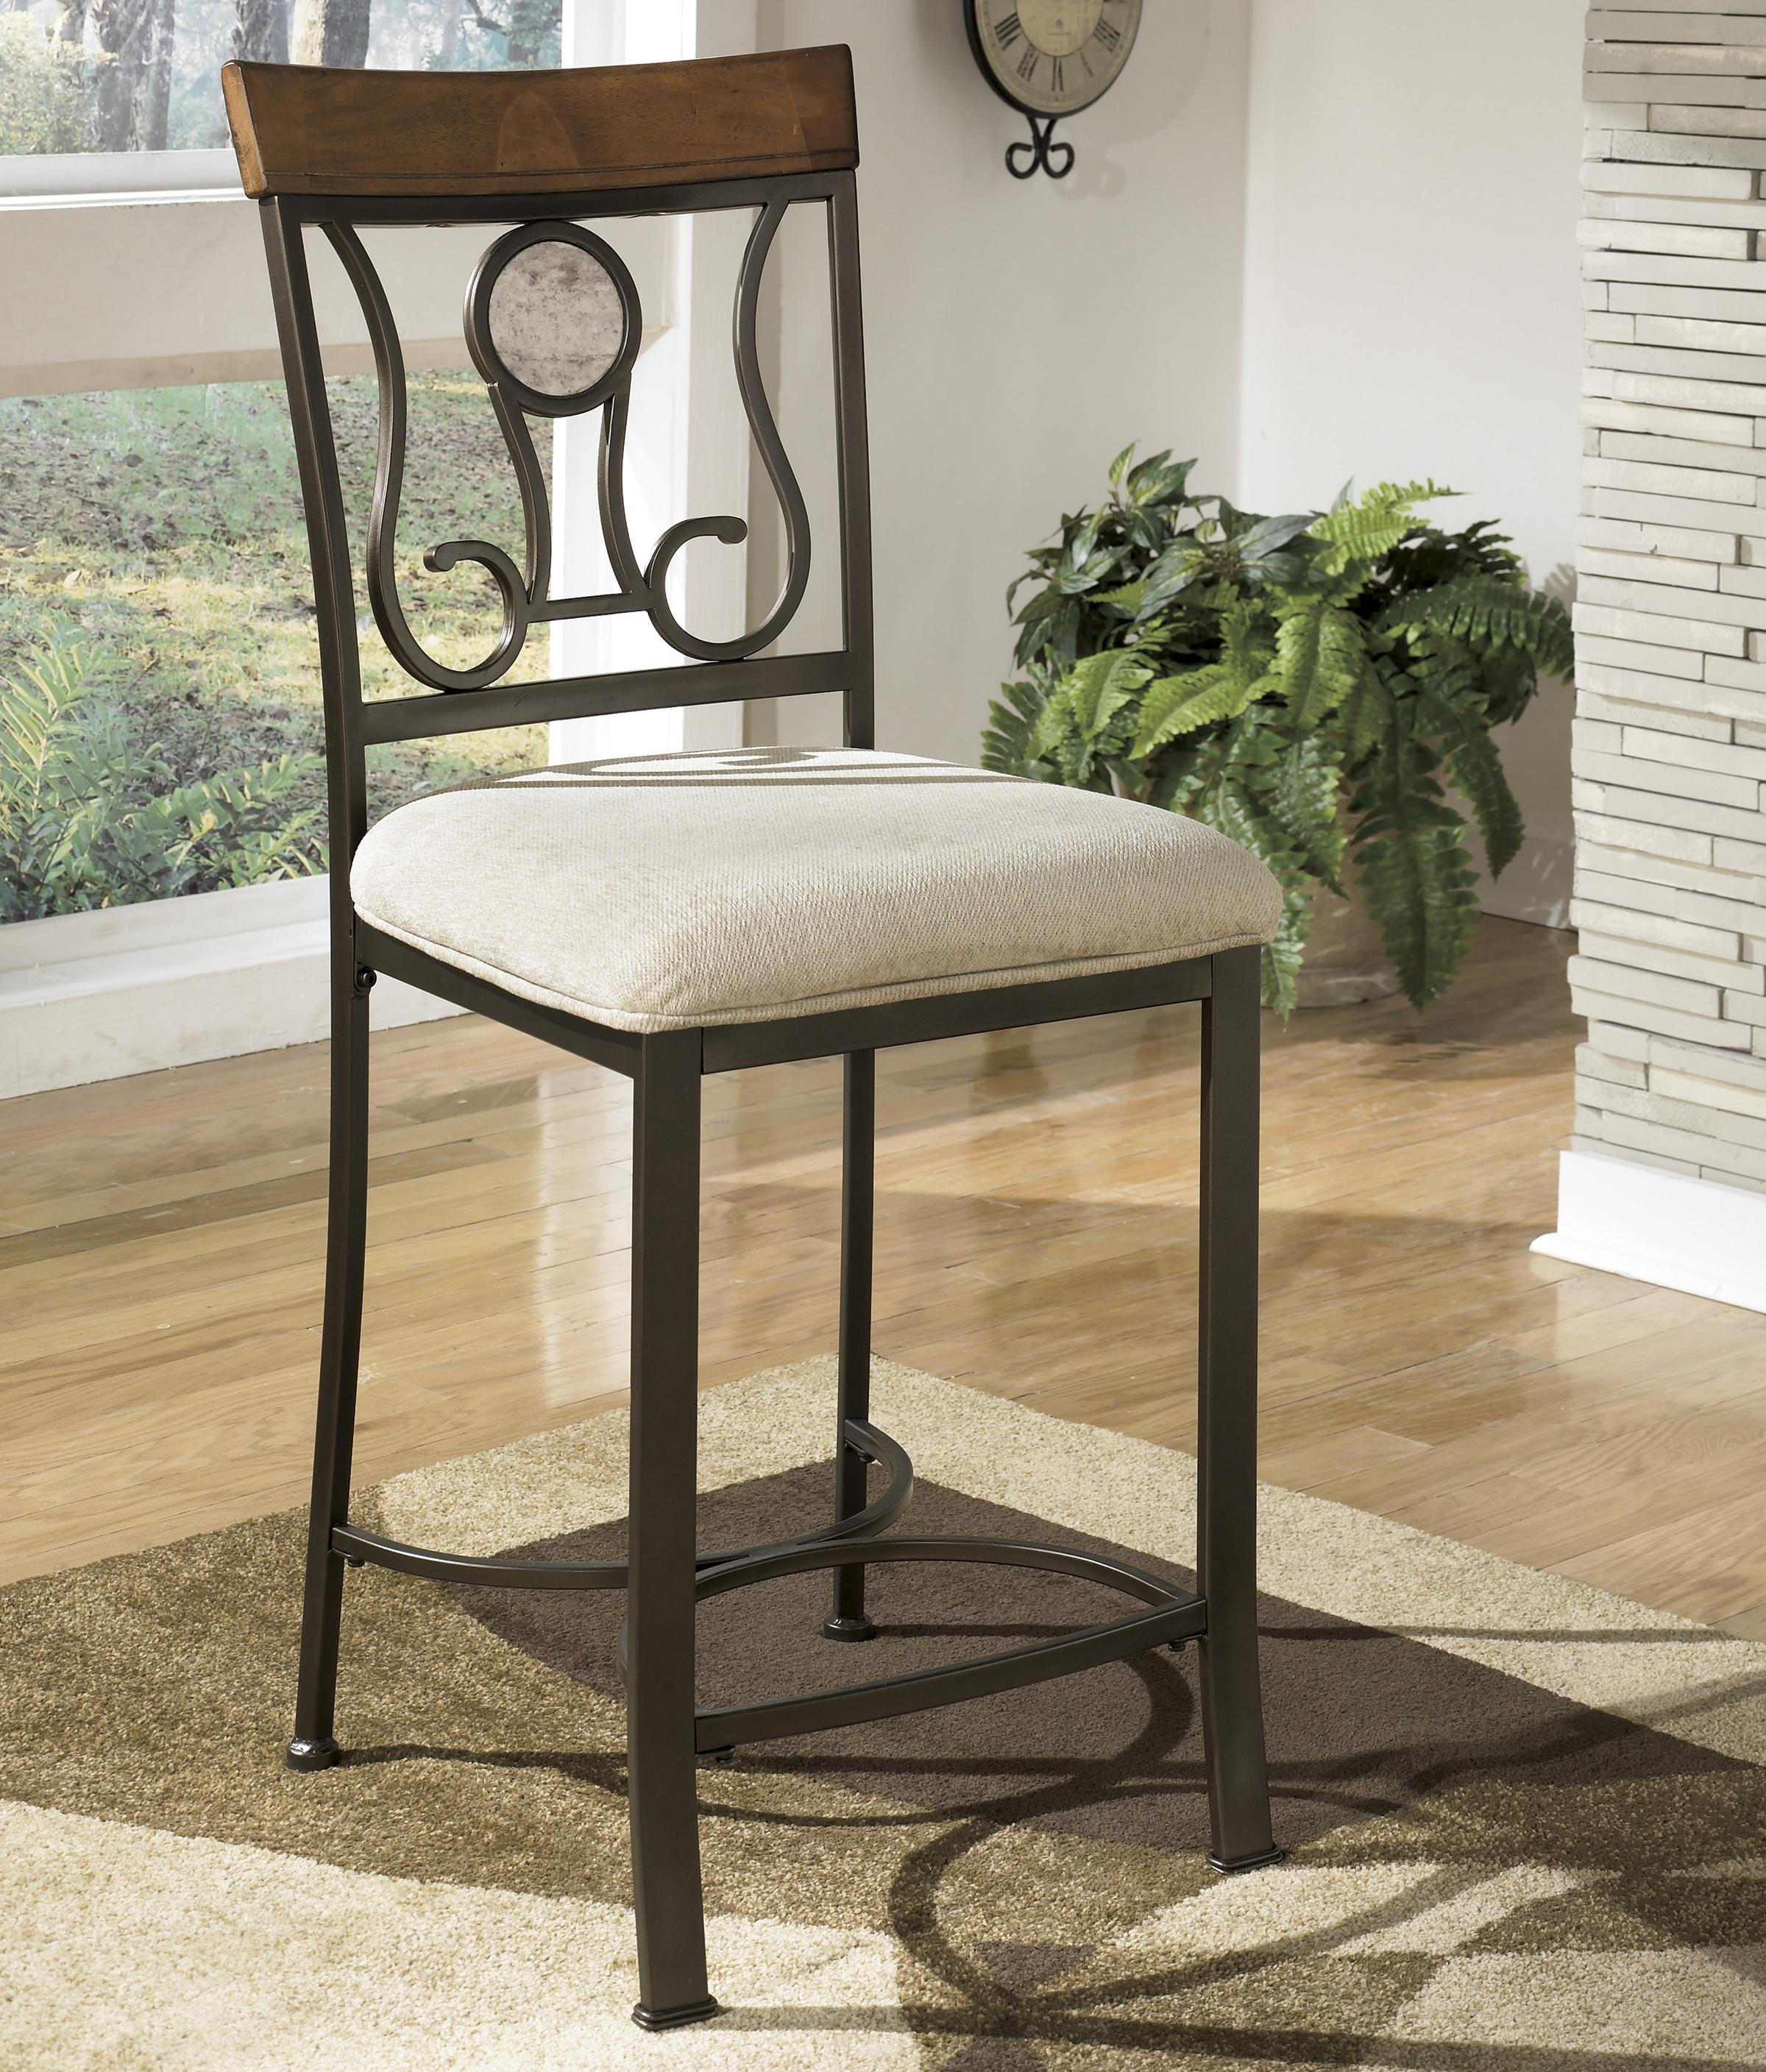 Signature Design by Ashley Hopstand Upholstered Barstool - Item Number: D314-124